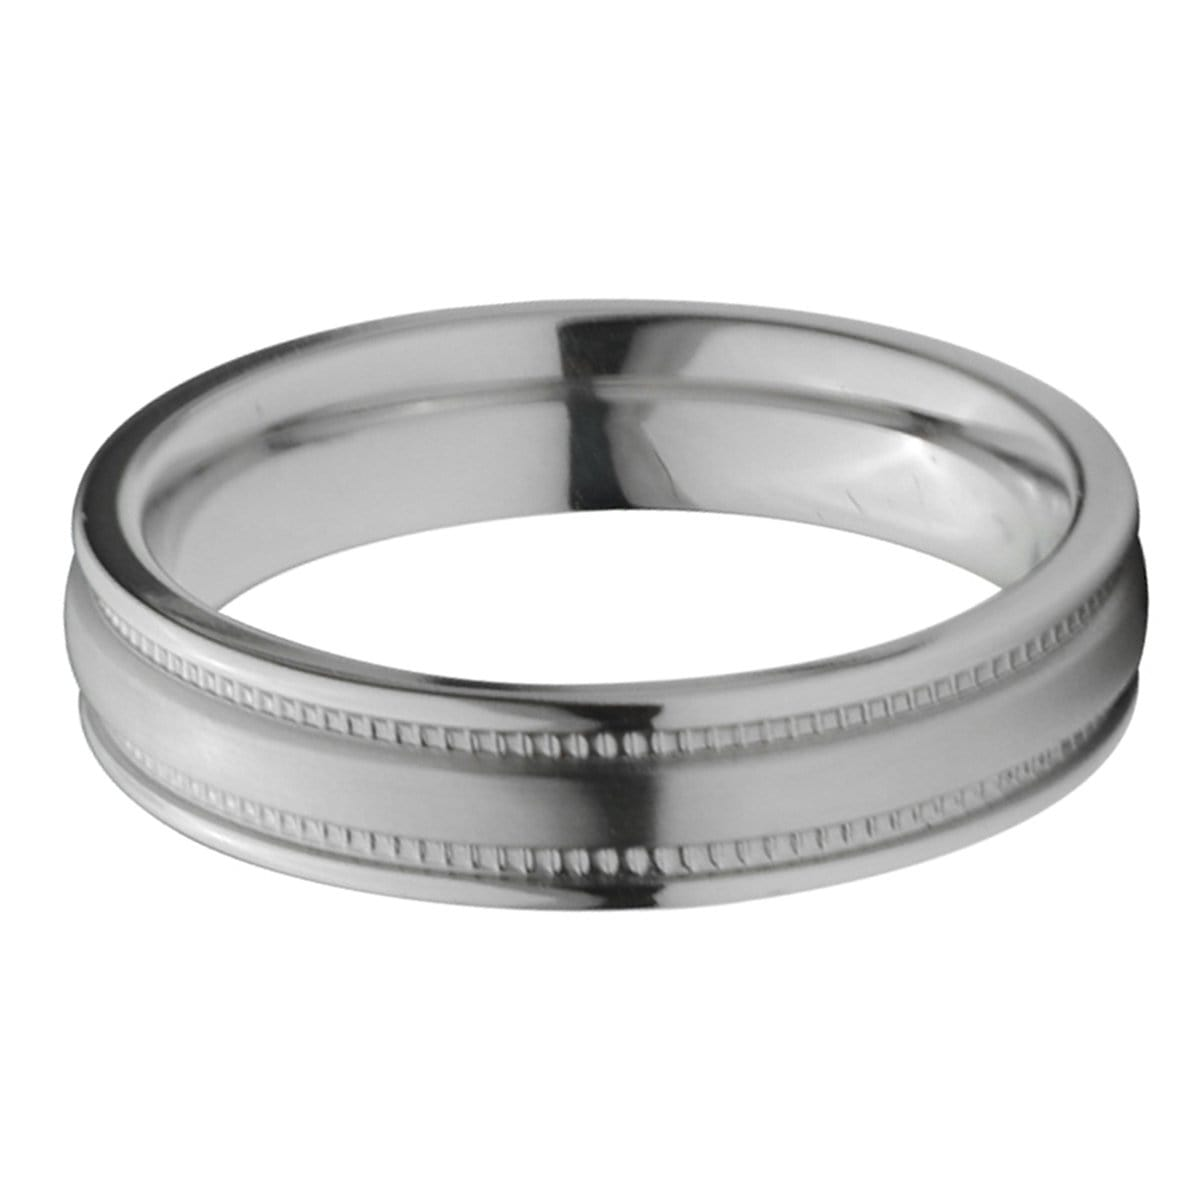 Silver Titanium 5mm Fancy Groove Border Band Rings